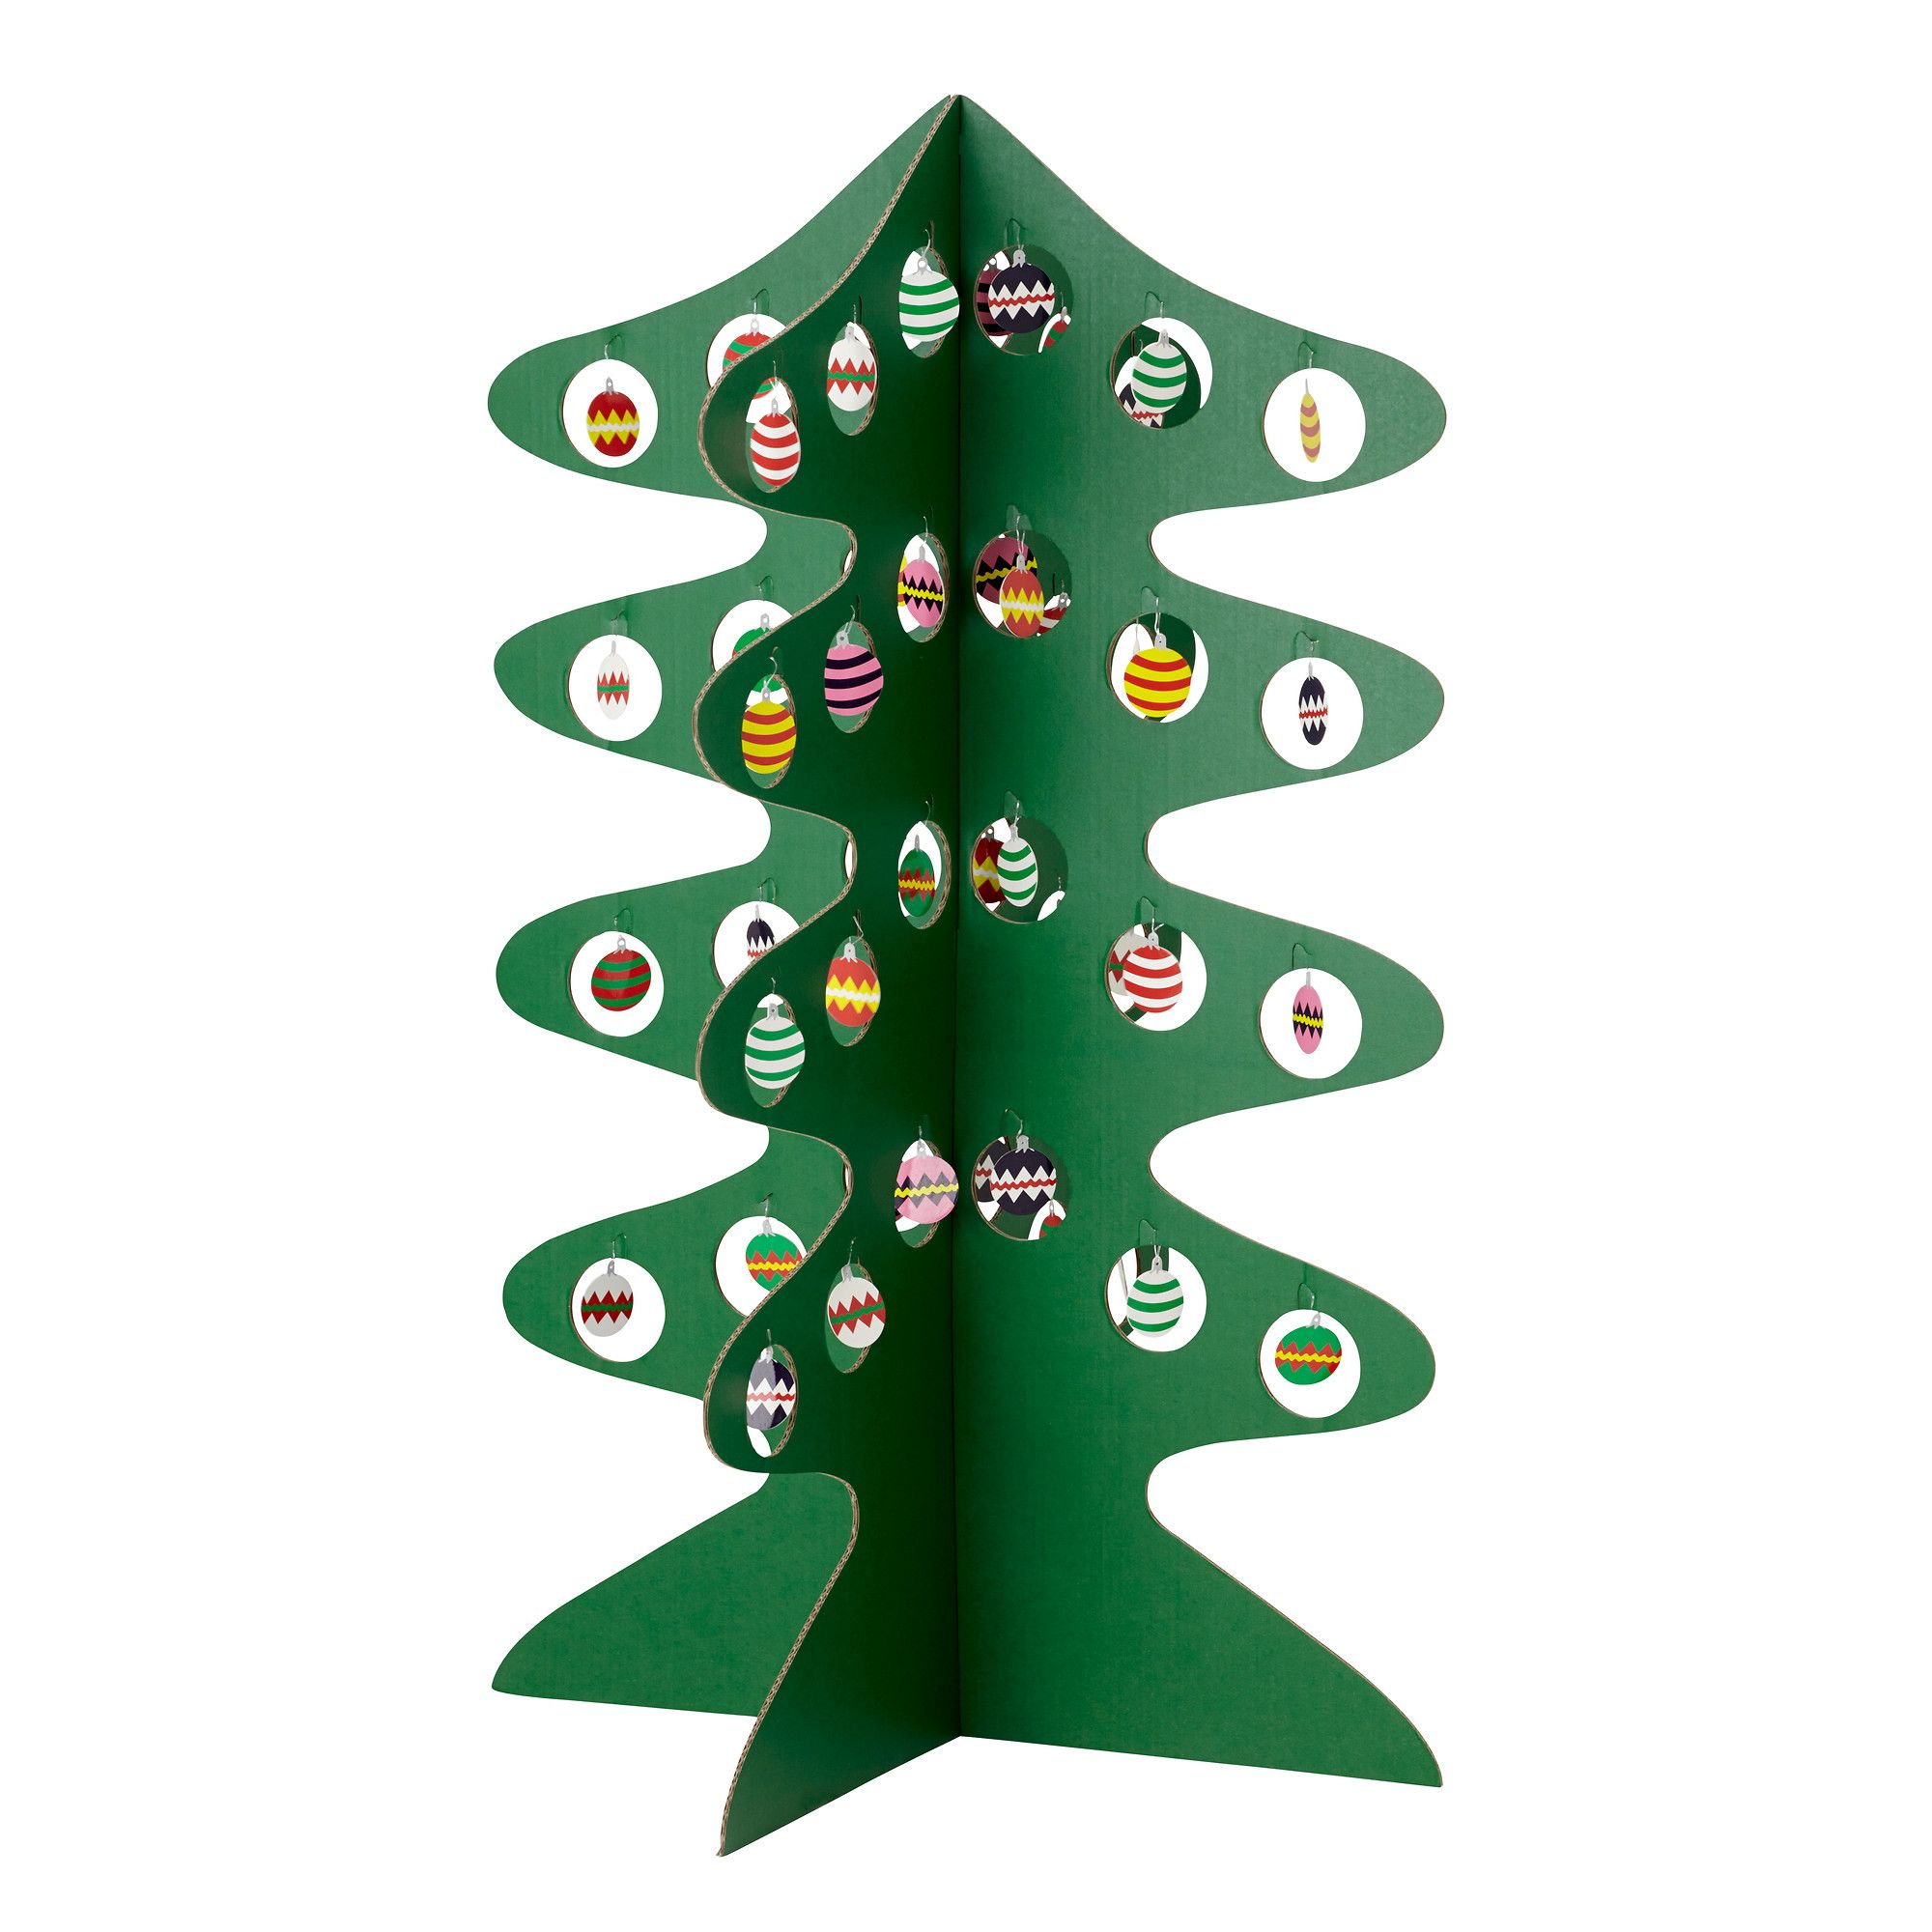 corrugated cardboard Christmas tree with 48 paper decorations 39 ¼